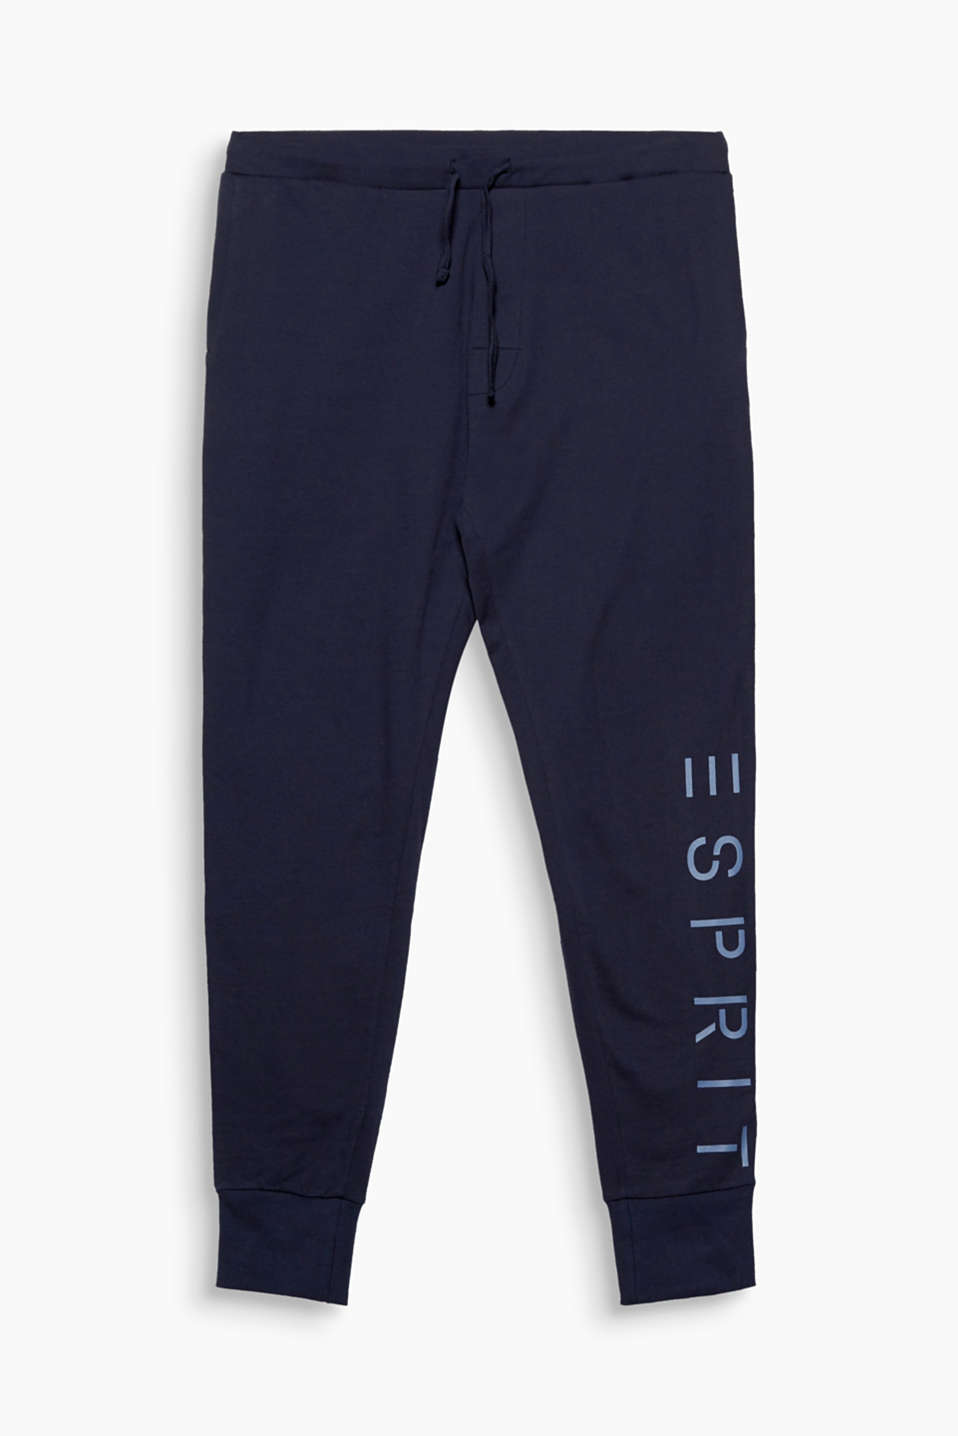 You are bound to feel good in these lightweight jersey trousers with a logo print and hem borders